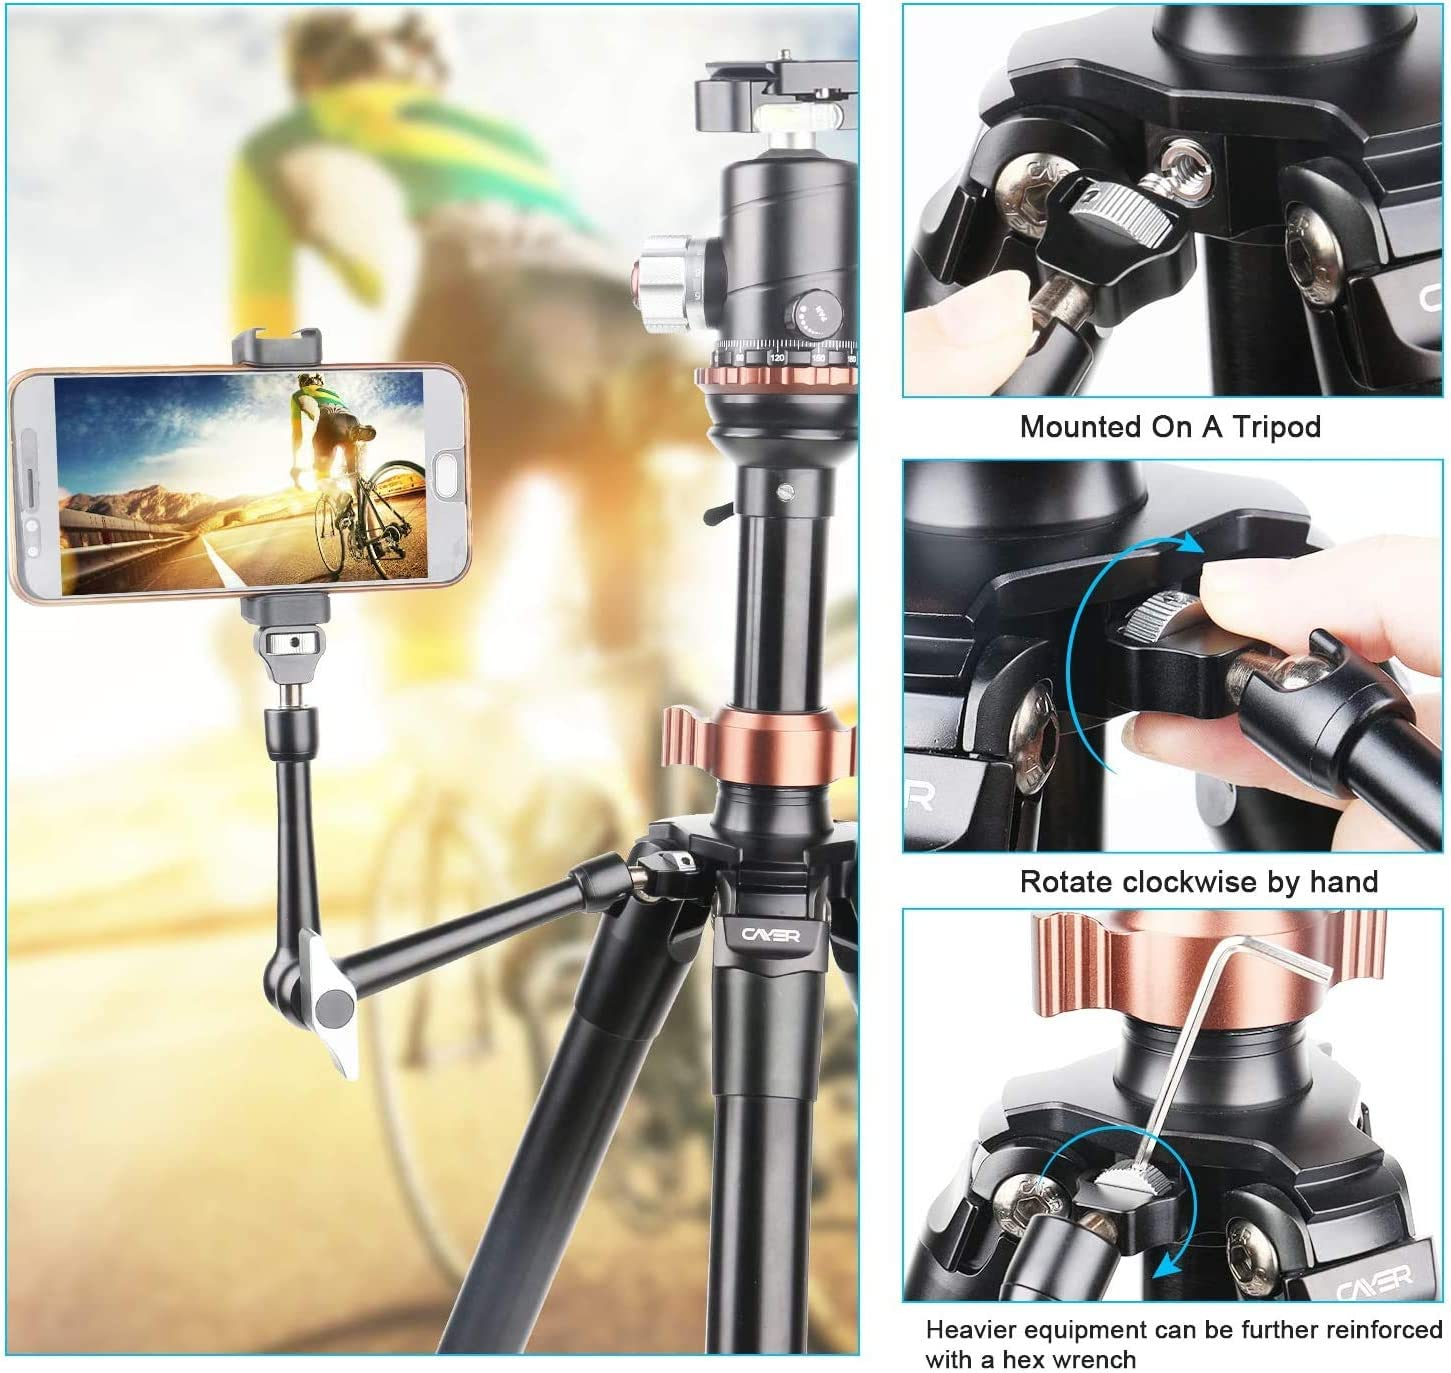 Cayer 11 inches Adjustable Articulating Friction Magic Arm Holder Mounts Kit with Super Clamp for Mirrorless Cameras LED Light Field Monitor Video Vlog Rig etc Flash Light Smartphone